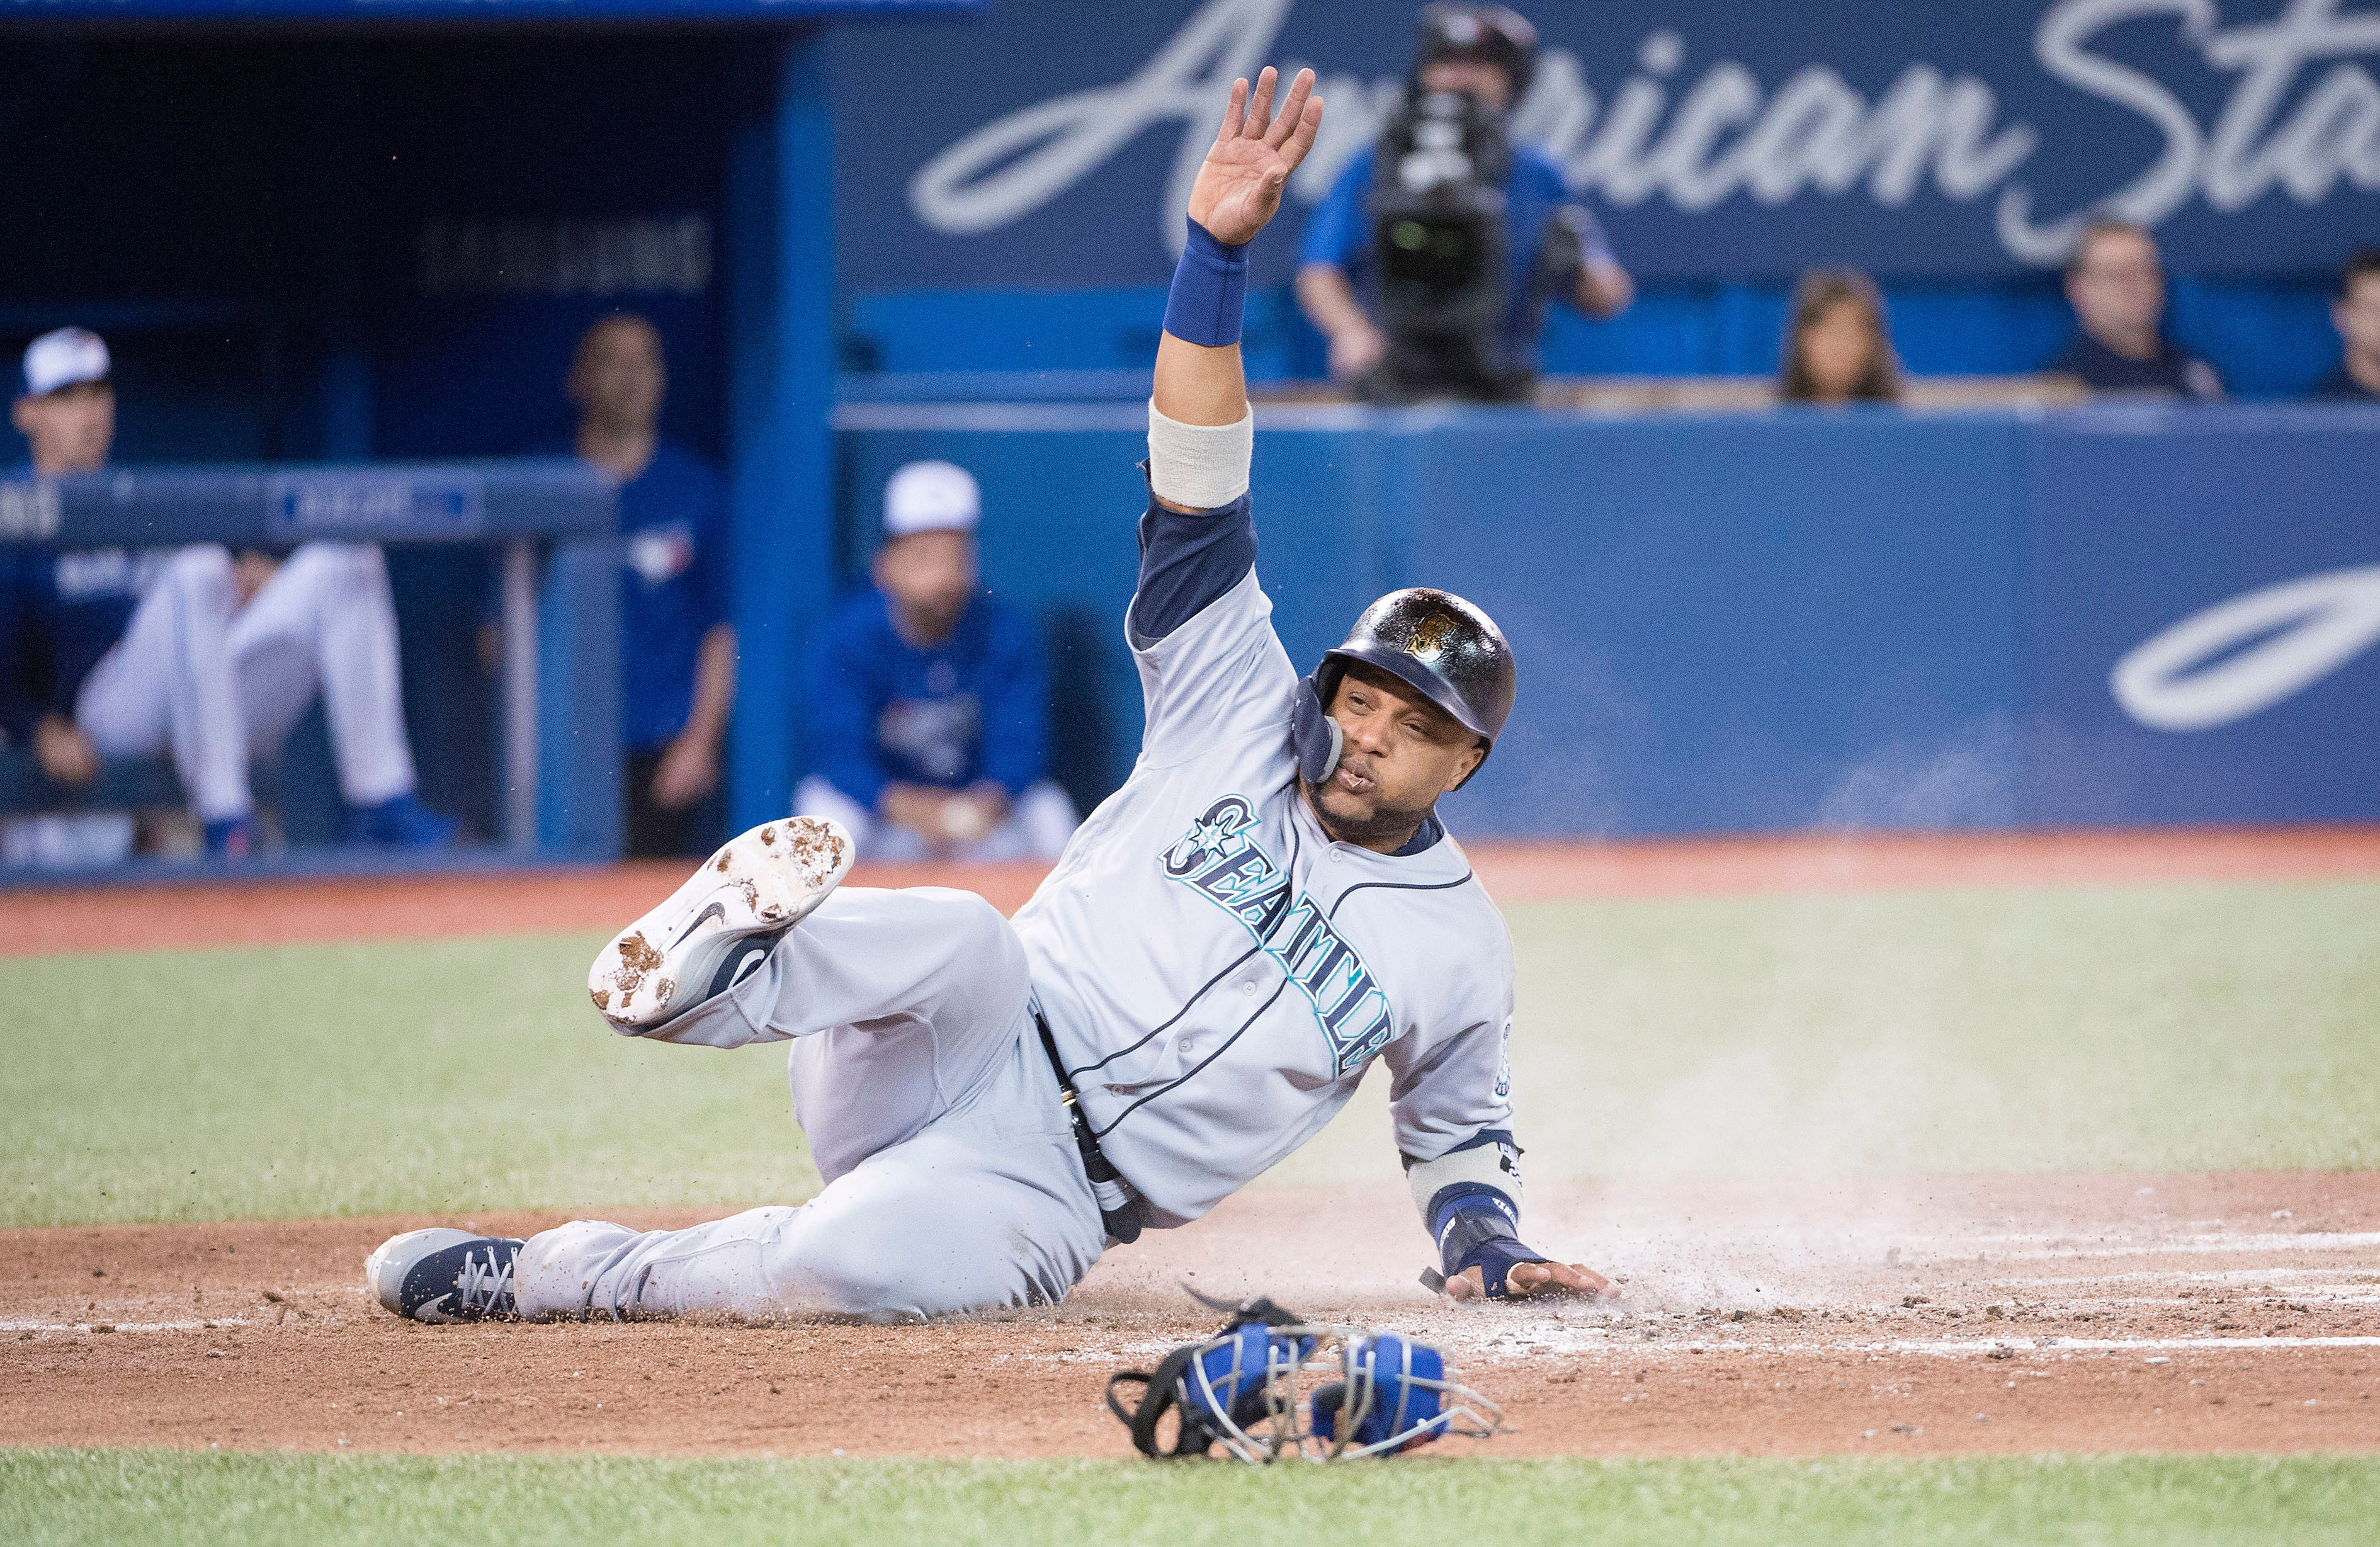 Seattle Mariners second baseman Robinson Cano slides into home scoring a run in the fifth inning during a game against the Toronto Blue Jays at Rogers Centre in Toronto.